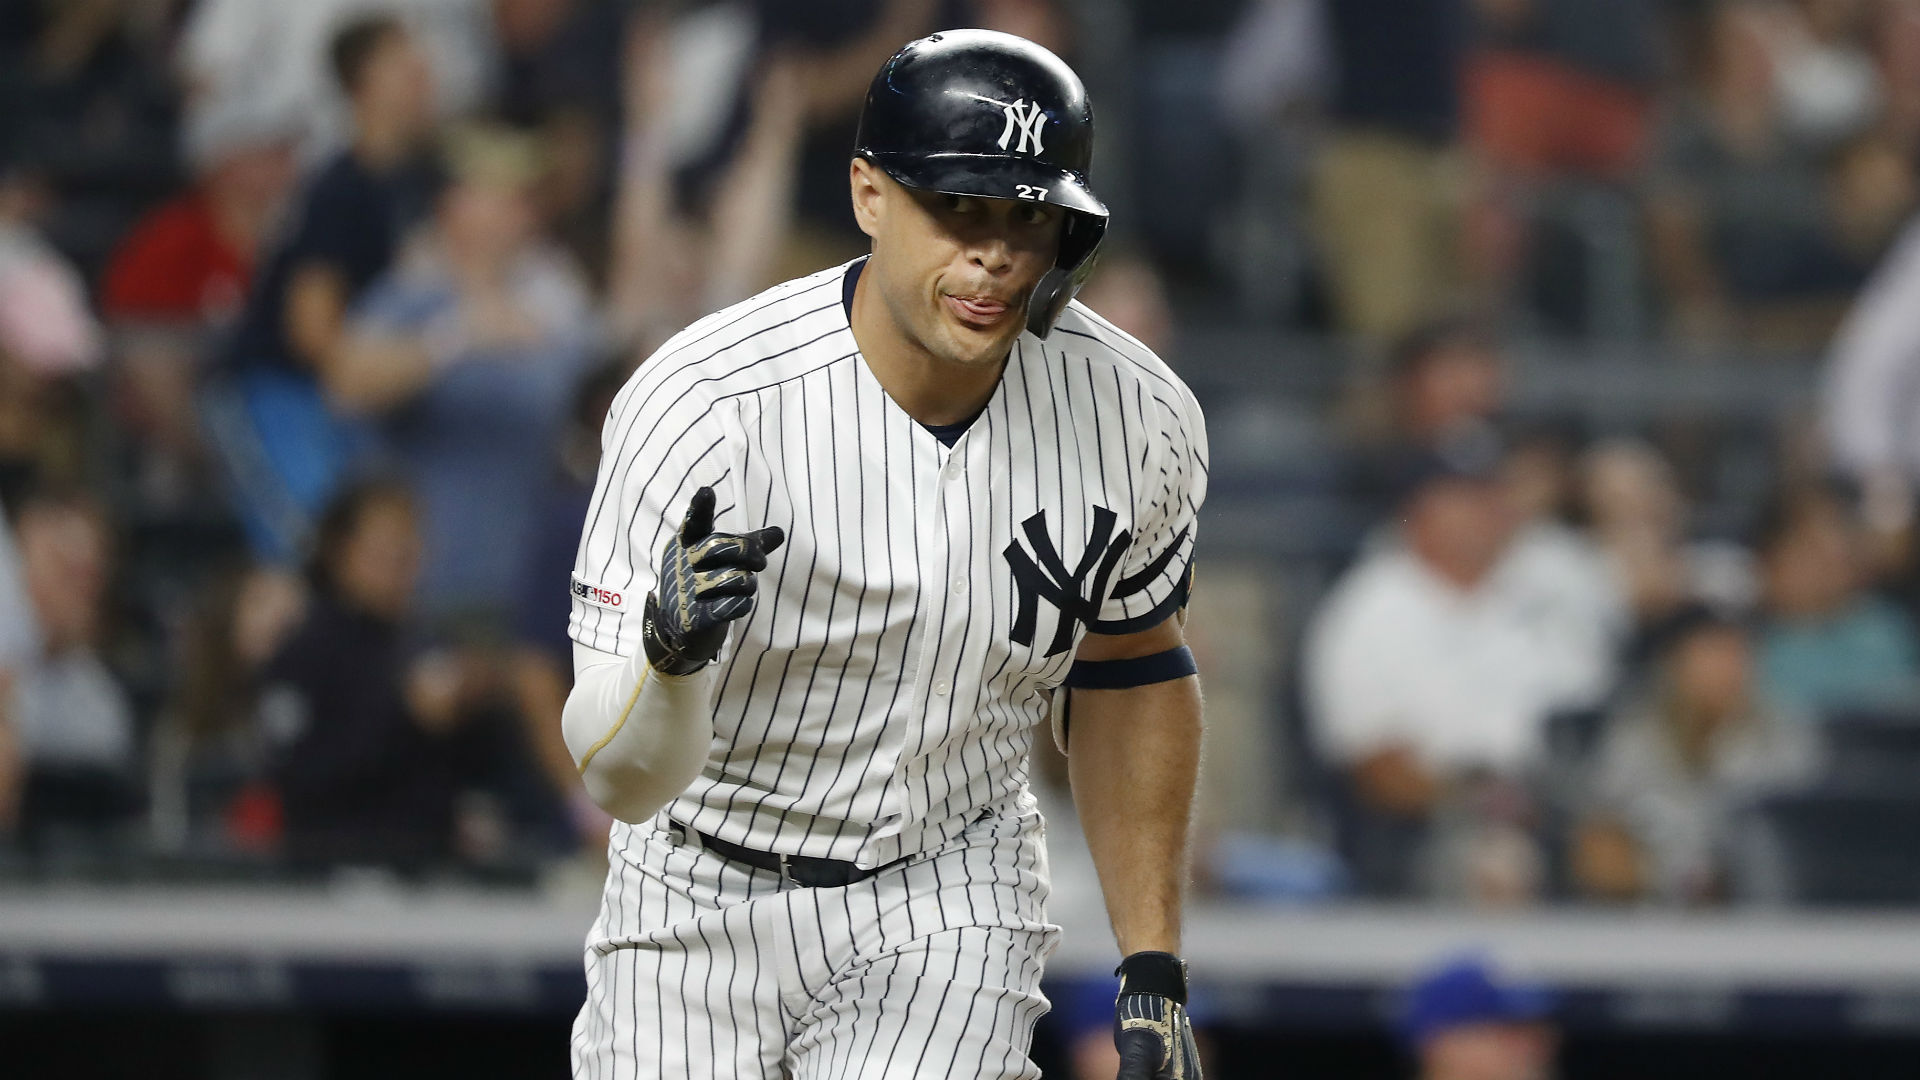 In four playoff games this year, Stanton is slashing .300/.467/.600 with a home run, two RBIs and four walks.